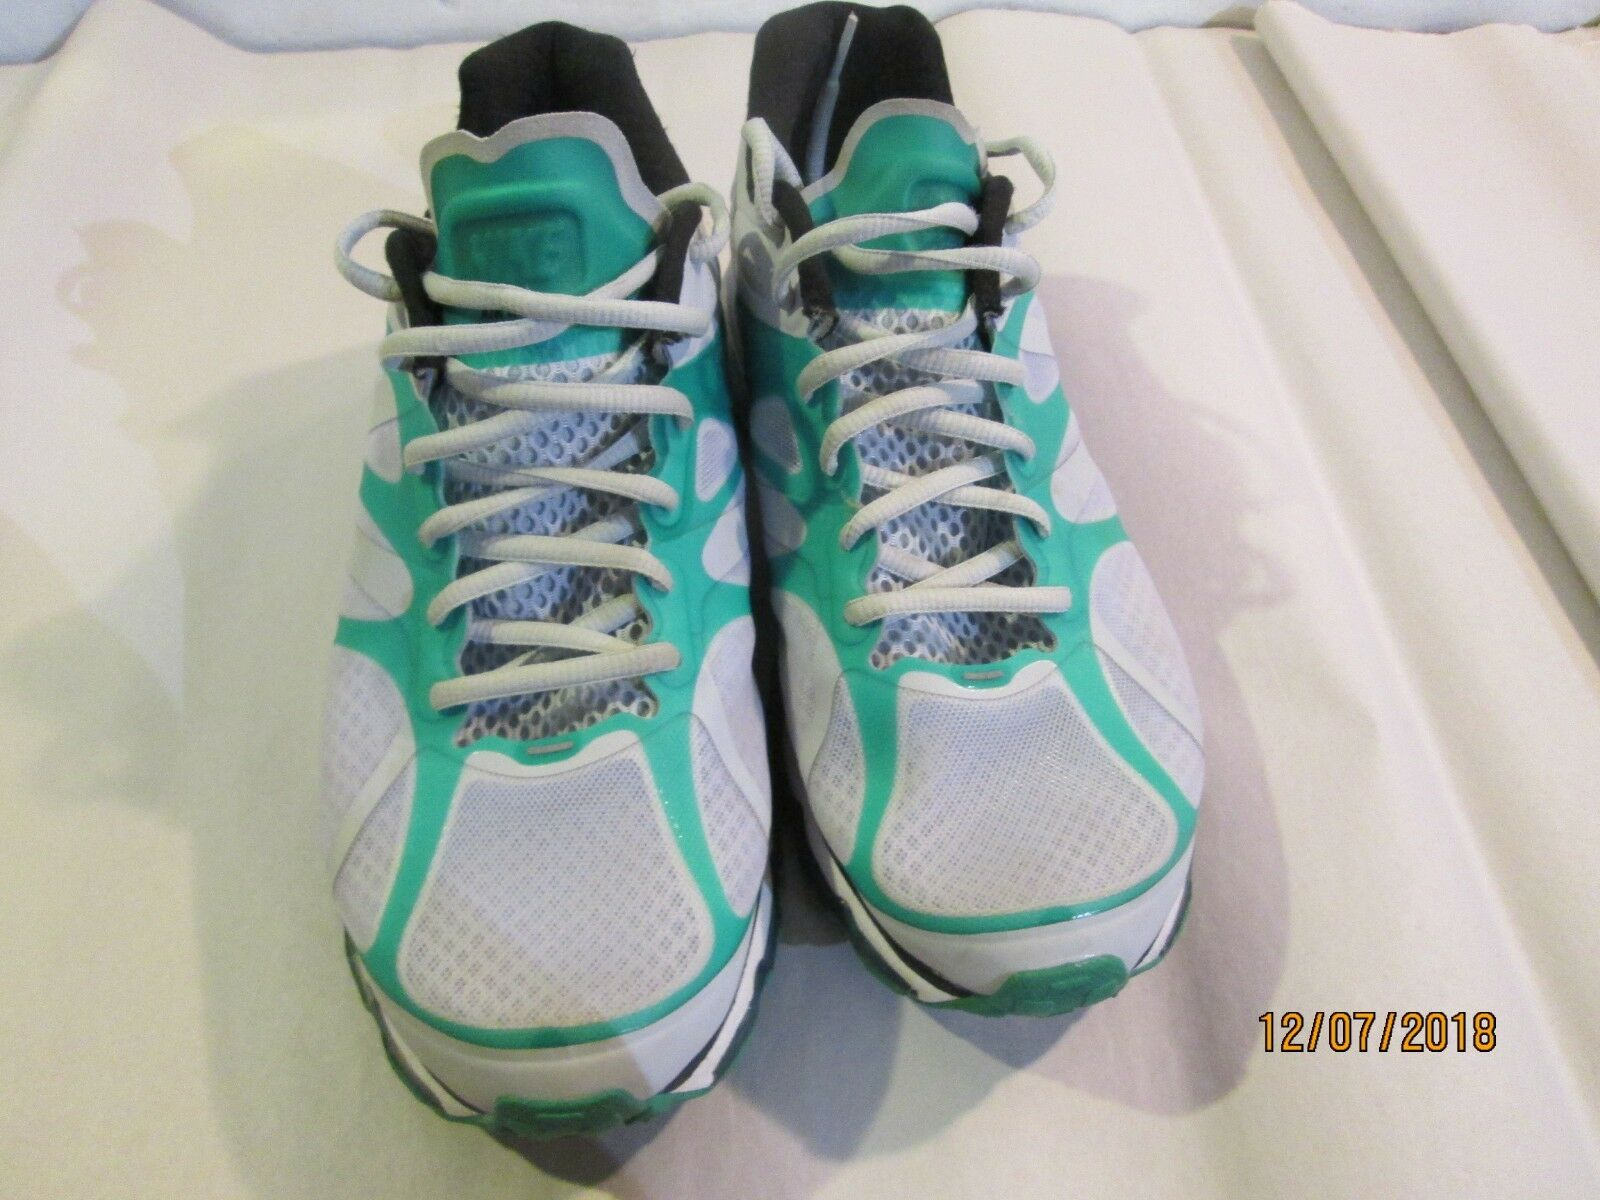 NIKE Air Max + green green green 487982-003 Size 9 Great Condition c4d7b9